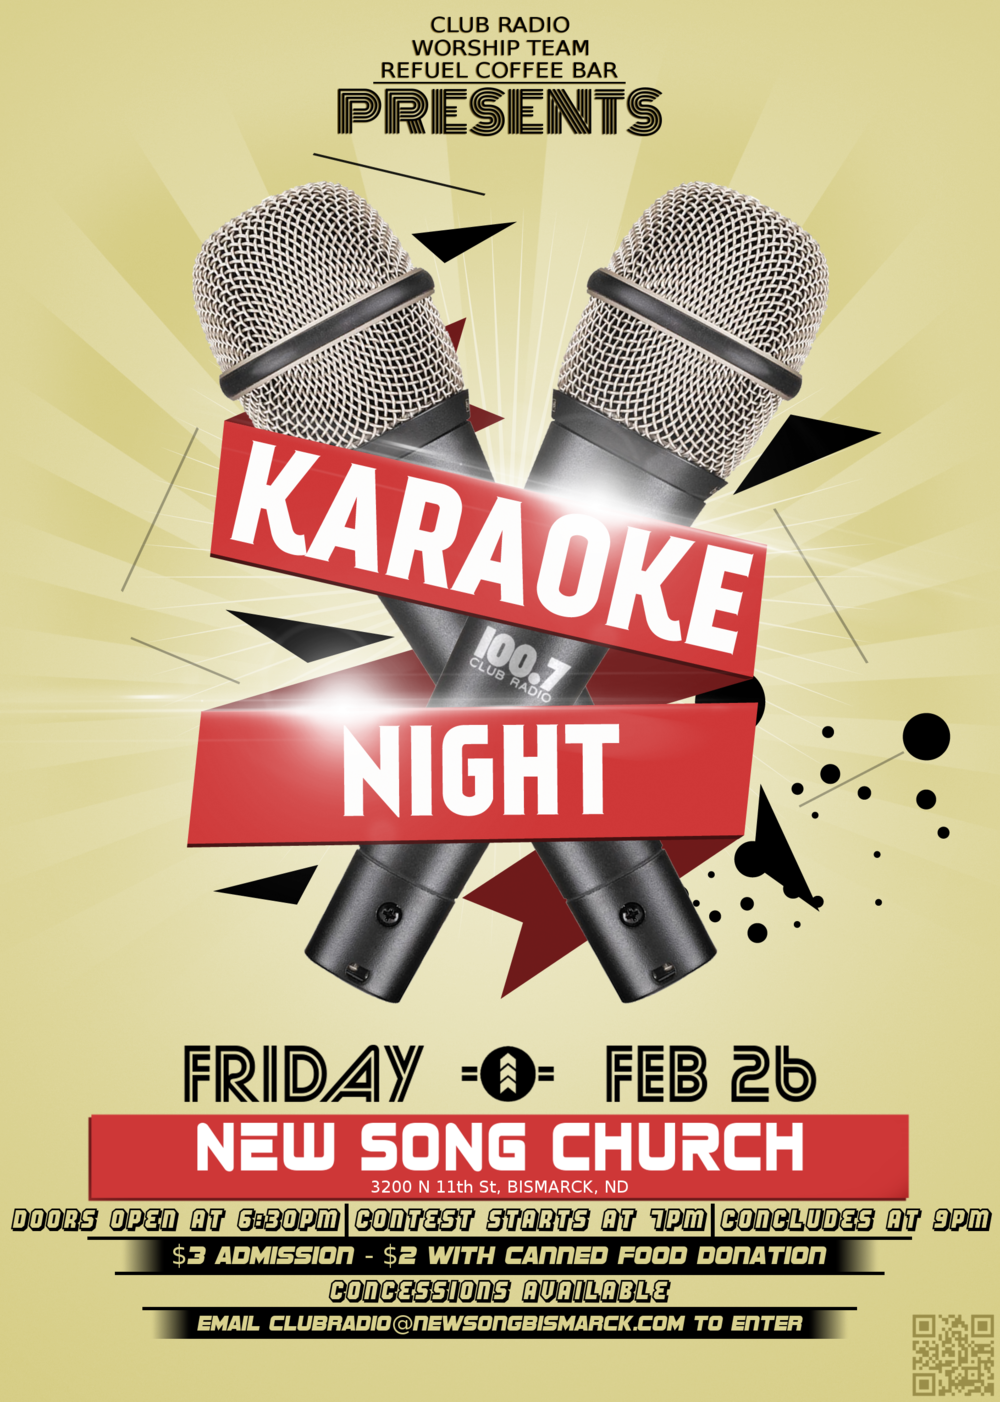 Have you always wanted to sing but haven't had the chance? We have the perfect opportunity for you! We're excited to announce our upcoming Karaoke Night on Friday, February 26! We're looking for individuals or groups to showcase their talents in front of a panel of judges for the chance to win great prizes! The contest is open to individuals or groups of 4 or less.  There will be a $3 cover charge to attend the event, or $2 with a canned food donation (performers are free). Refreshments will be sold throughout the night, with all proceeds going towards supporting Club Radio, Refuel Coffee Bar, and New Song's Worship Team.  Doors open at 6:30, with the first singer taking the stage at 7:00. Winners will be announced by 9:00.  If you're interested in performing, send in your top 3 song choices to clubradio@newsongbismarck.com or sign up at the Access Booth. We're only opening it up to the first 15 entries - spots will go fast, so make sure to enter now!